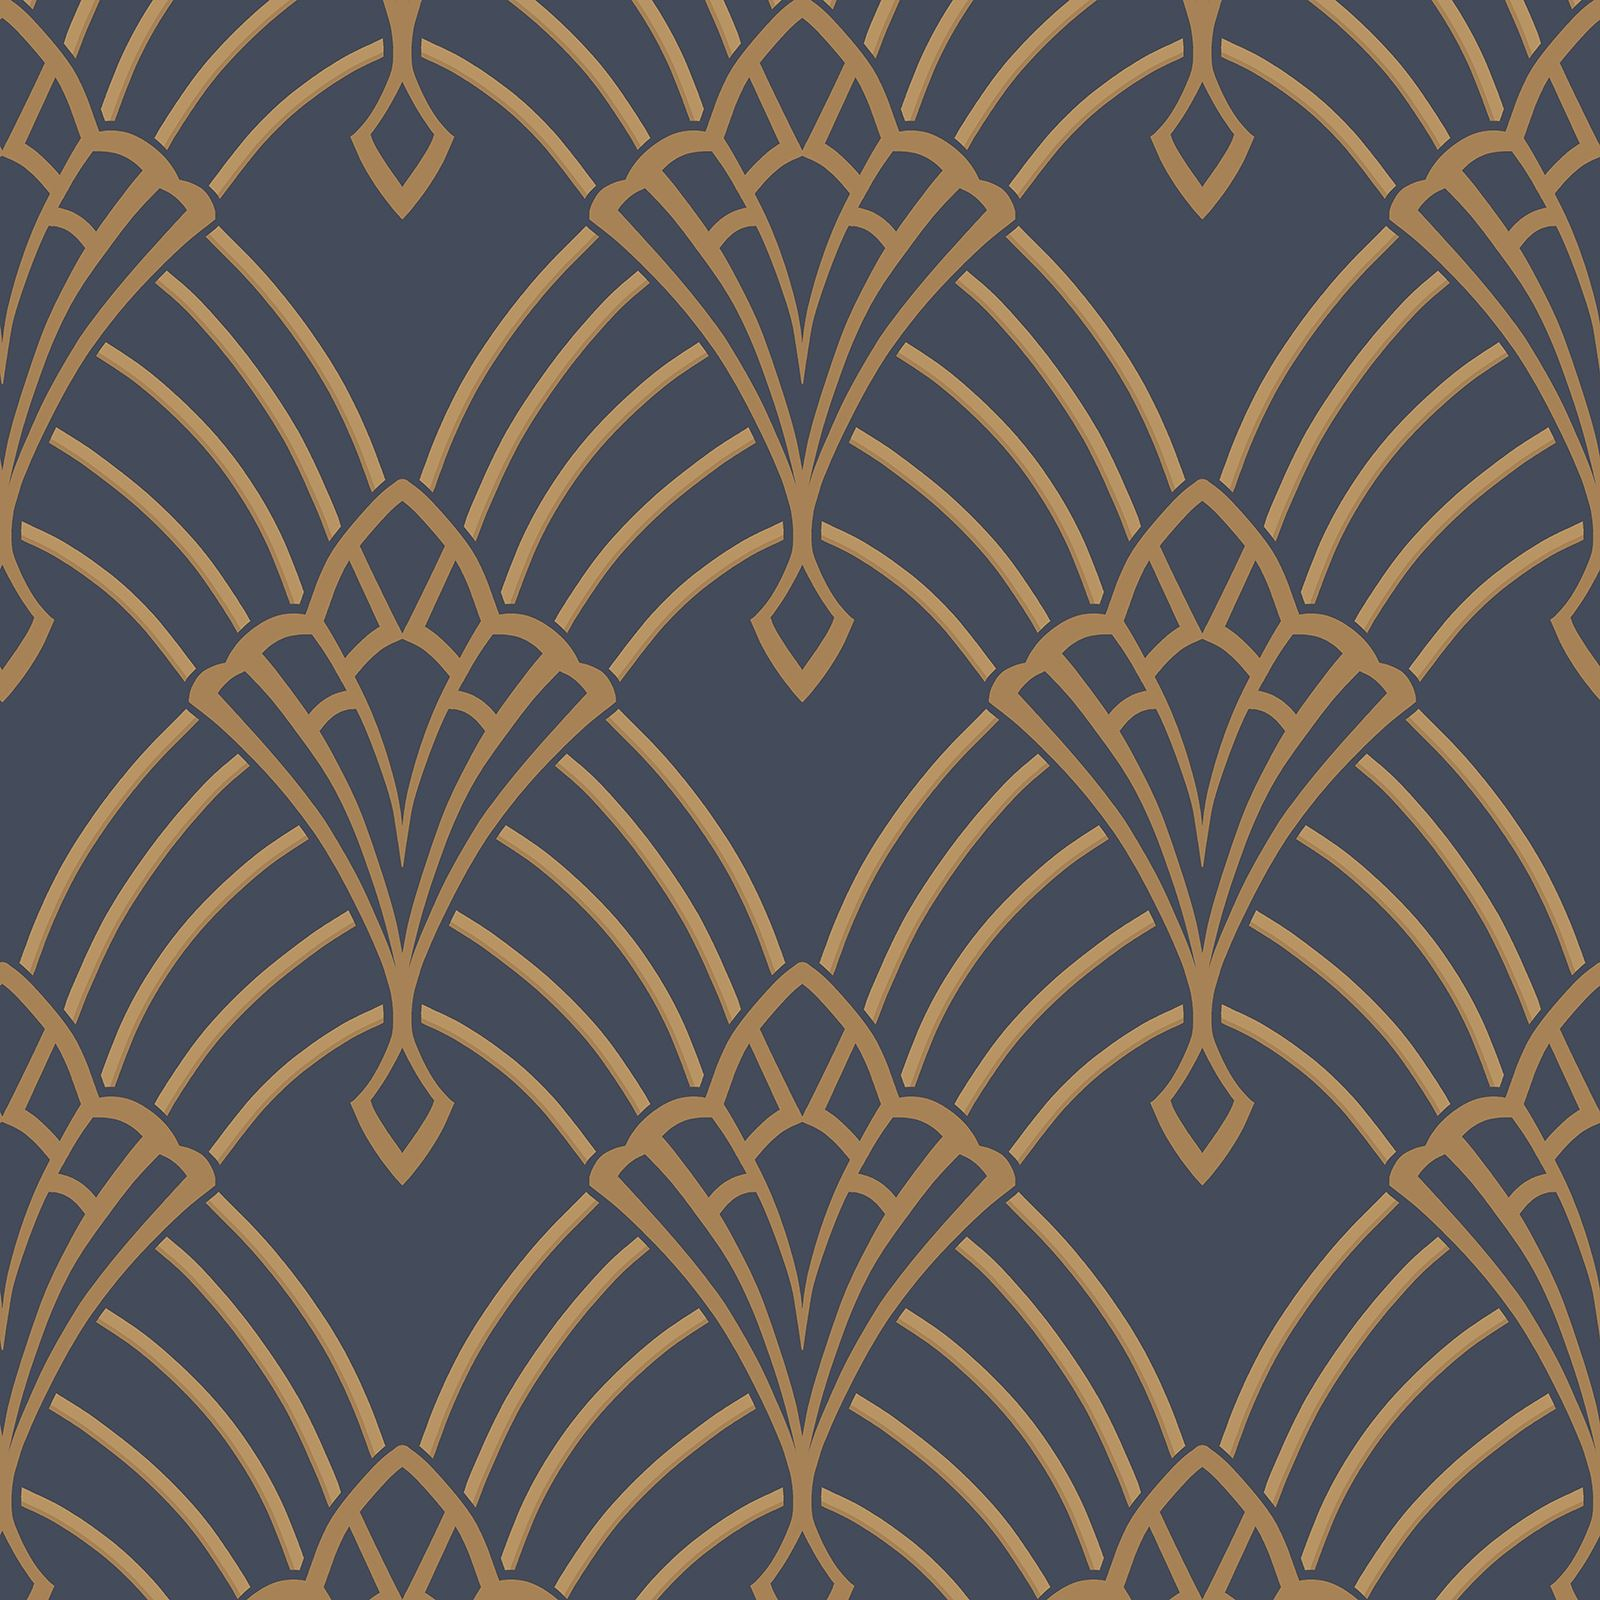 Astoria art deco wallpaper dark blue gold rasch 305340 for Art deco patterns